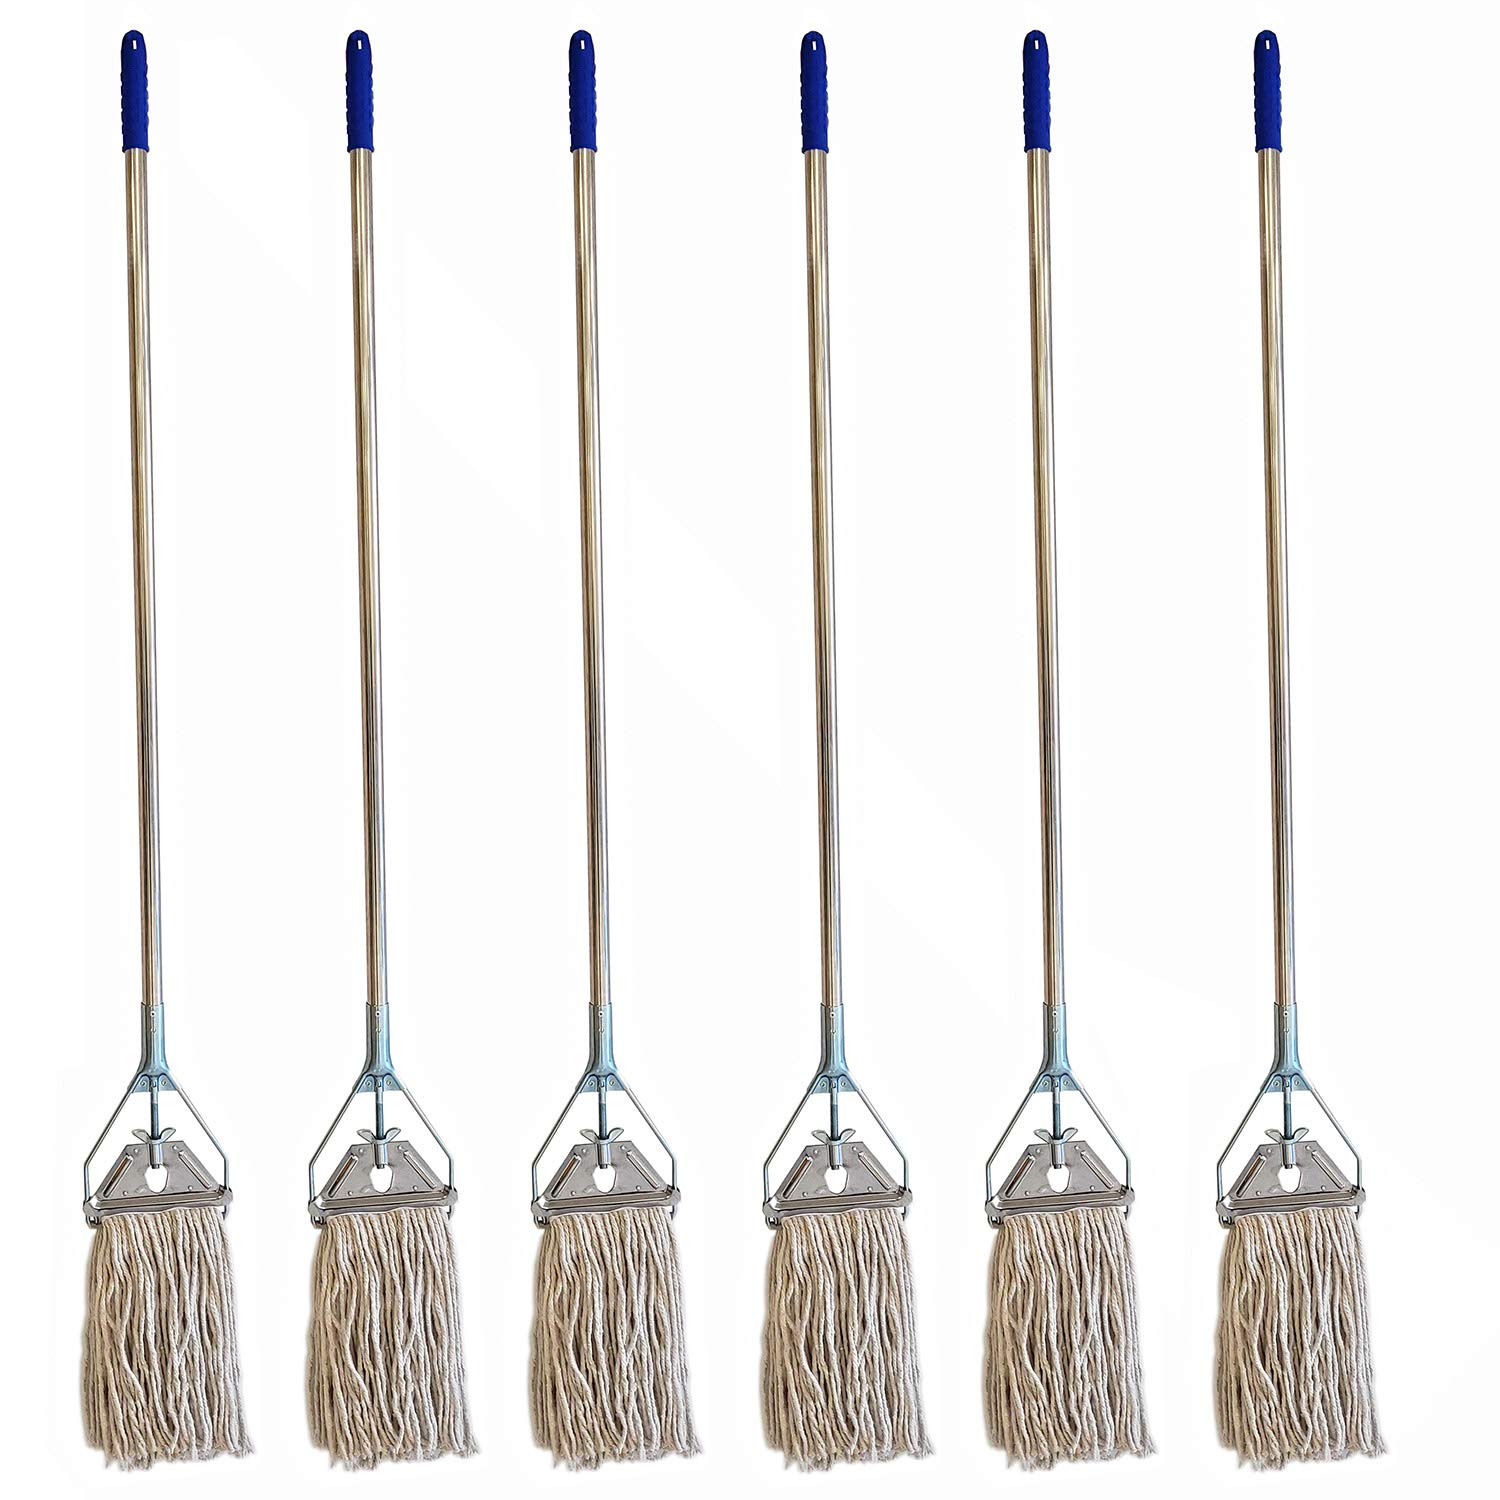 Heavy Duty Premium Industrial Strength Stainless Steel Mop With Handle With Cotton Mop Head for Floor Cleaning-Kitchen Home Office Janitorial Industrial Warehouse (Mop With Head(6 Pack))